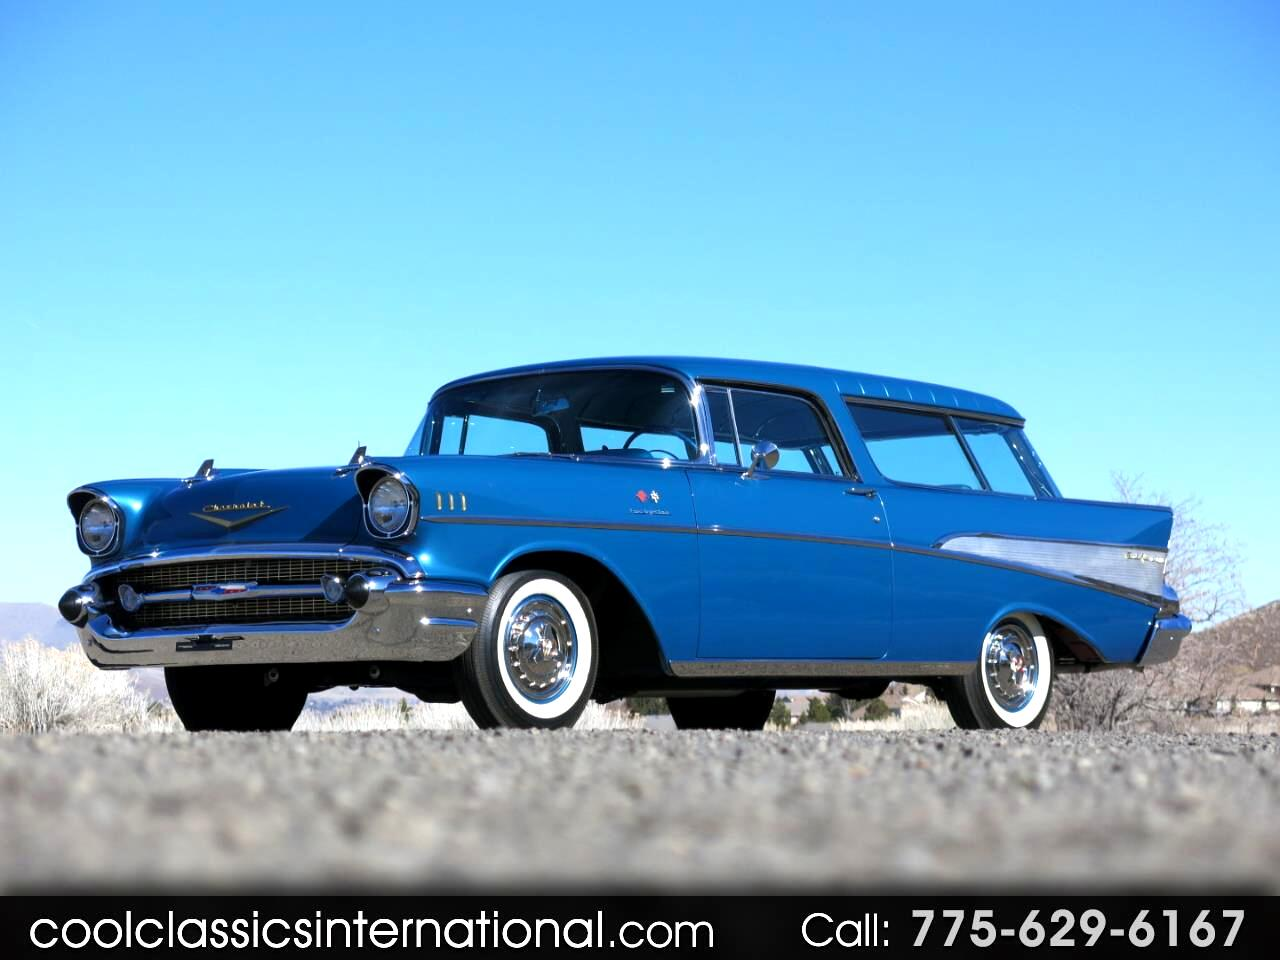 1957 Chevrolet Nomad Bel Air Fuel Injection